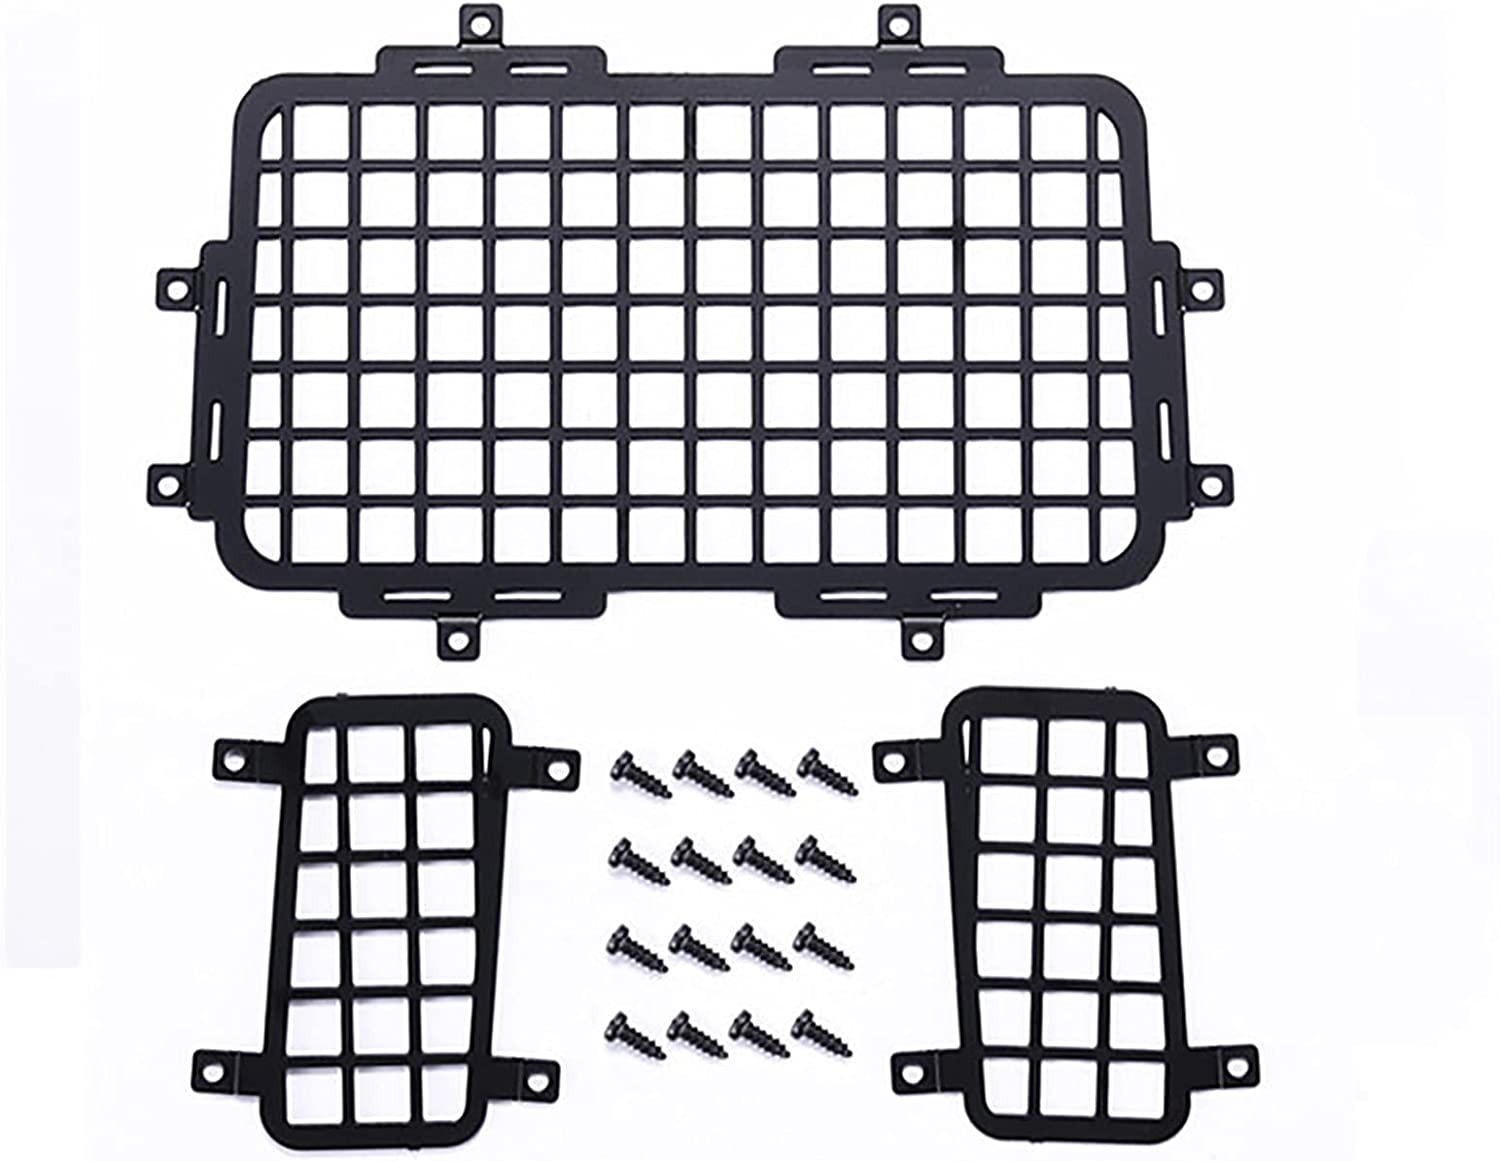 SHEAWA Stainless Steel Car Rear Window Mesh DIY Accessories for